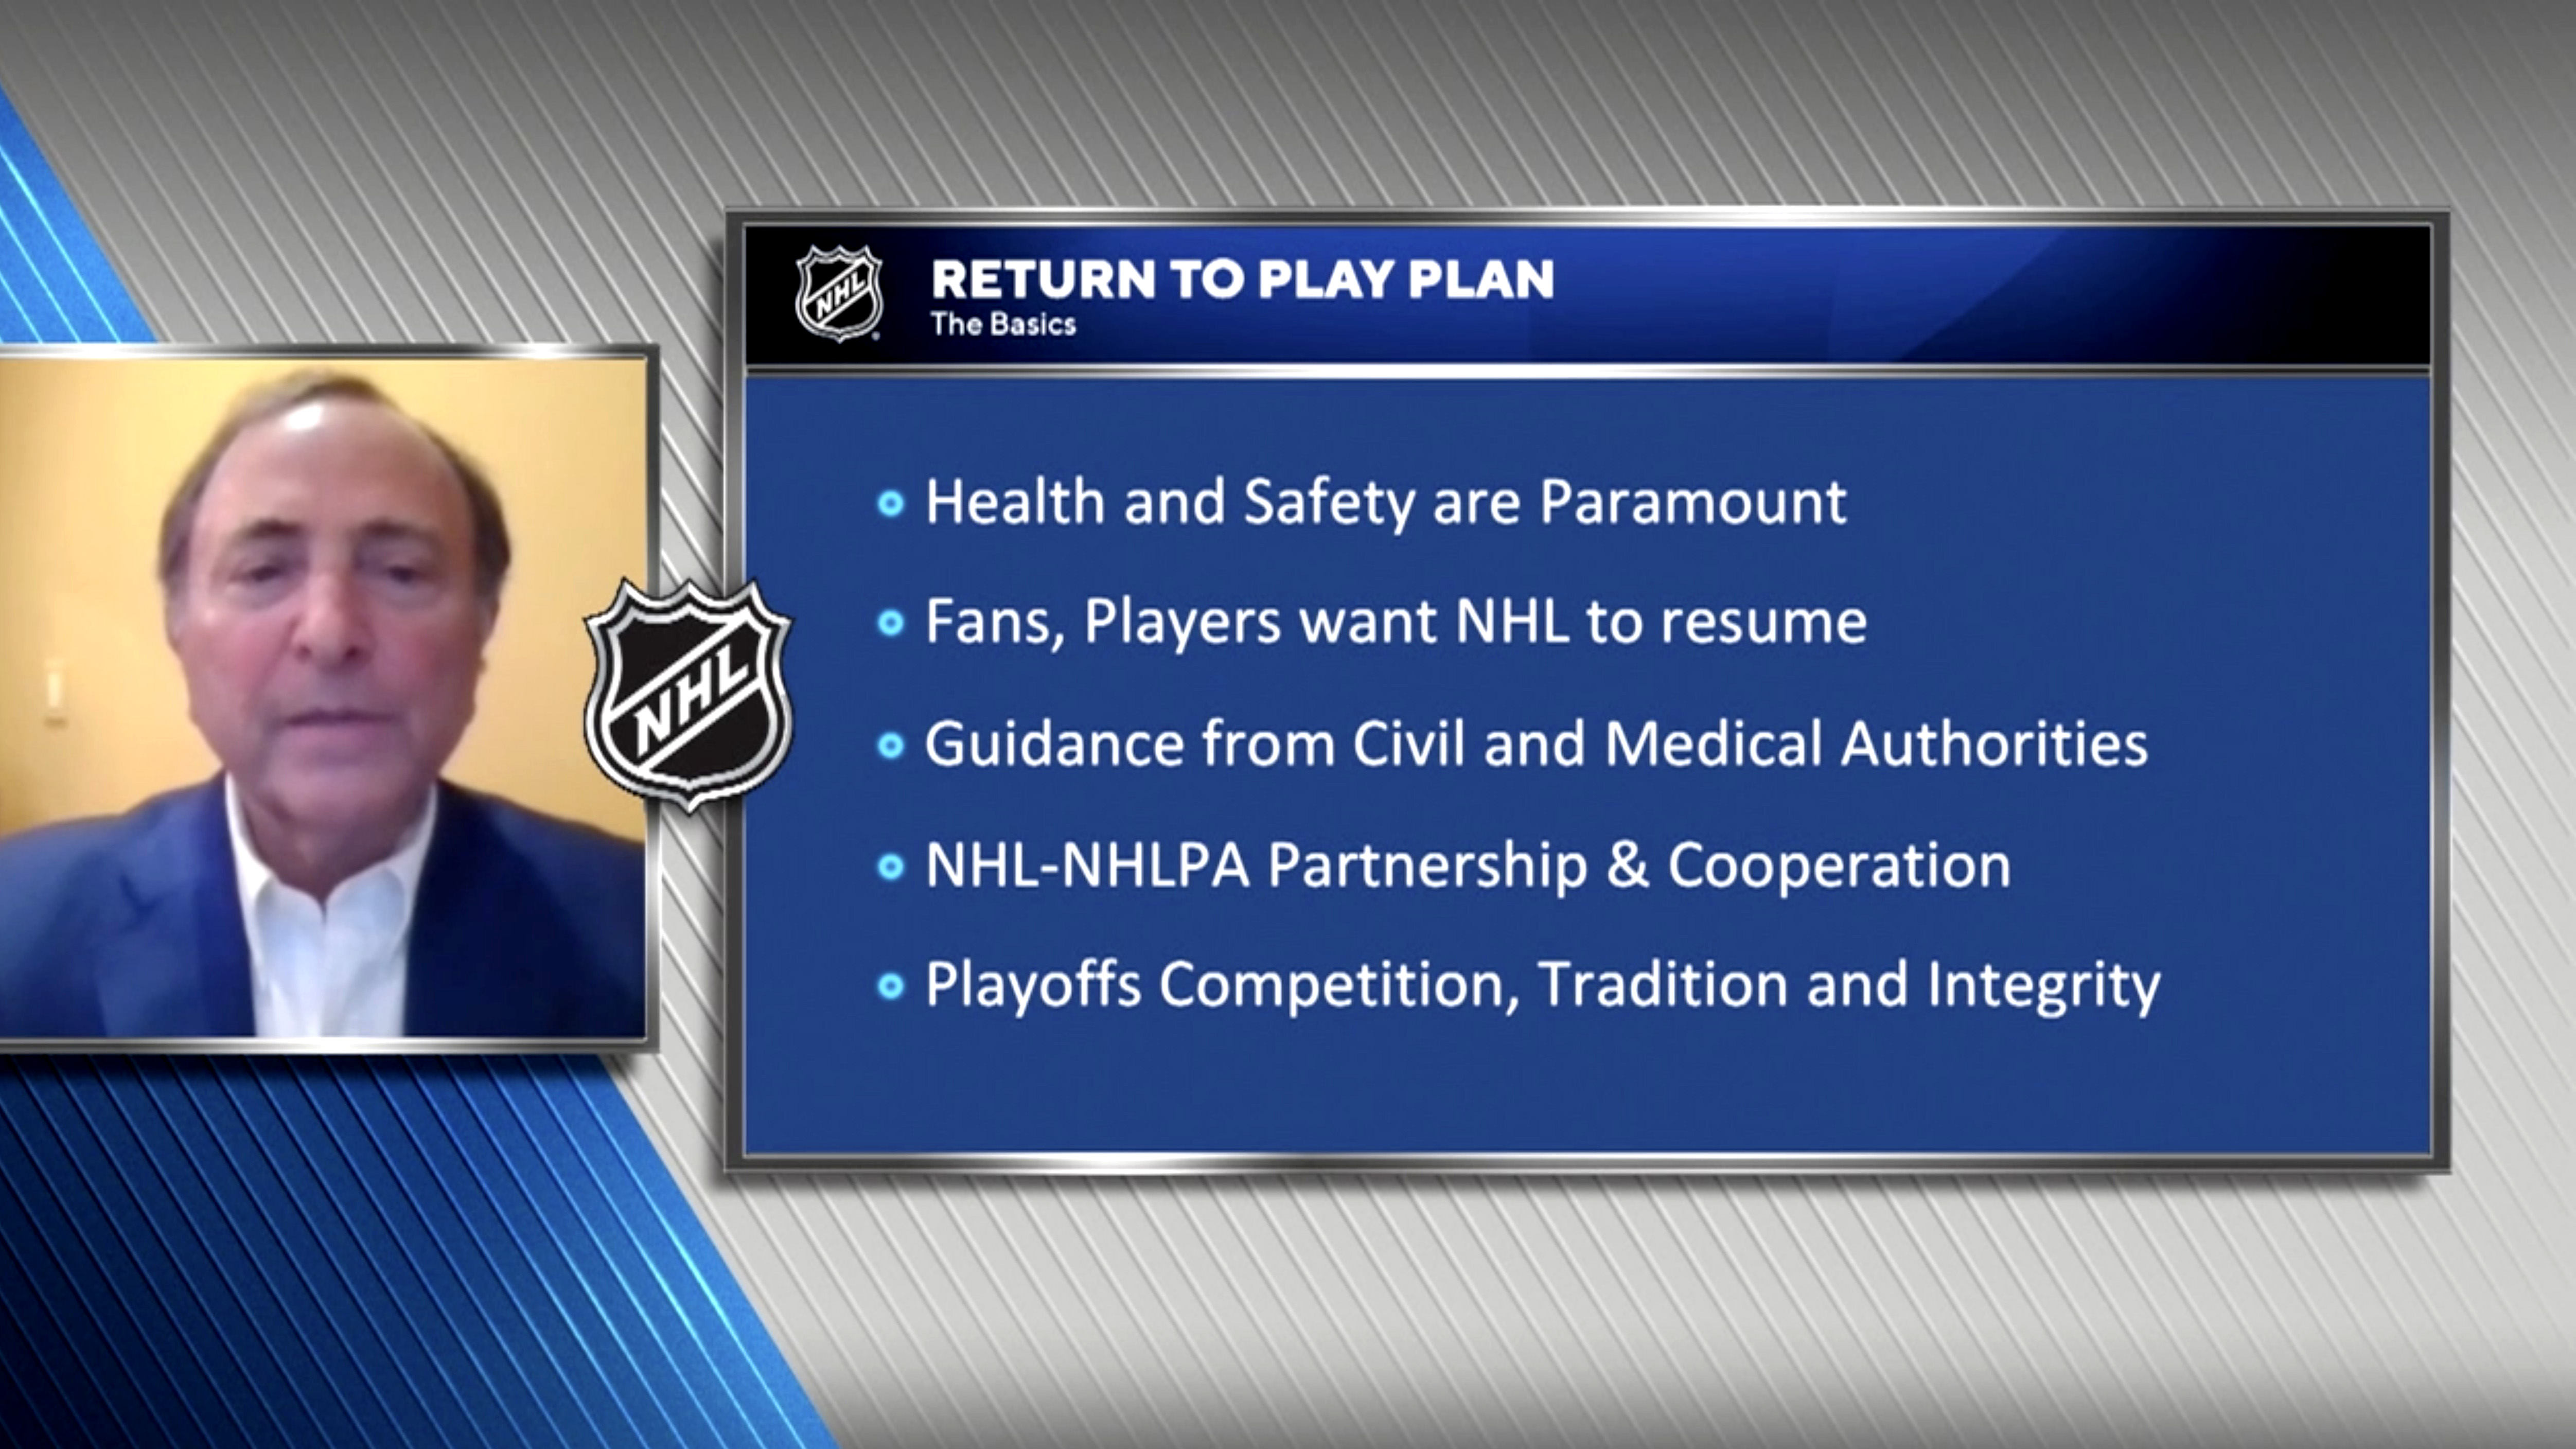 NHL Commissioner Gary Bettman Announces Return To Play Plan For Resumption Of Season